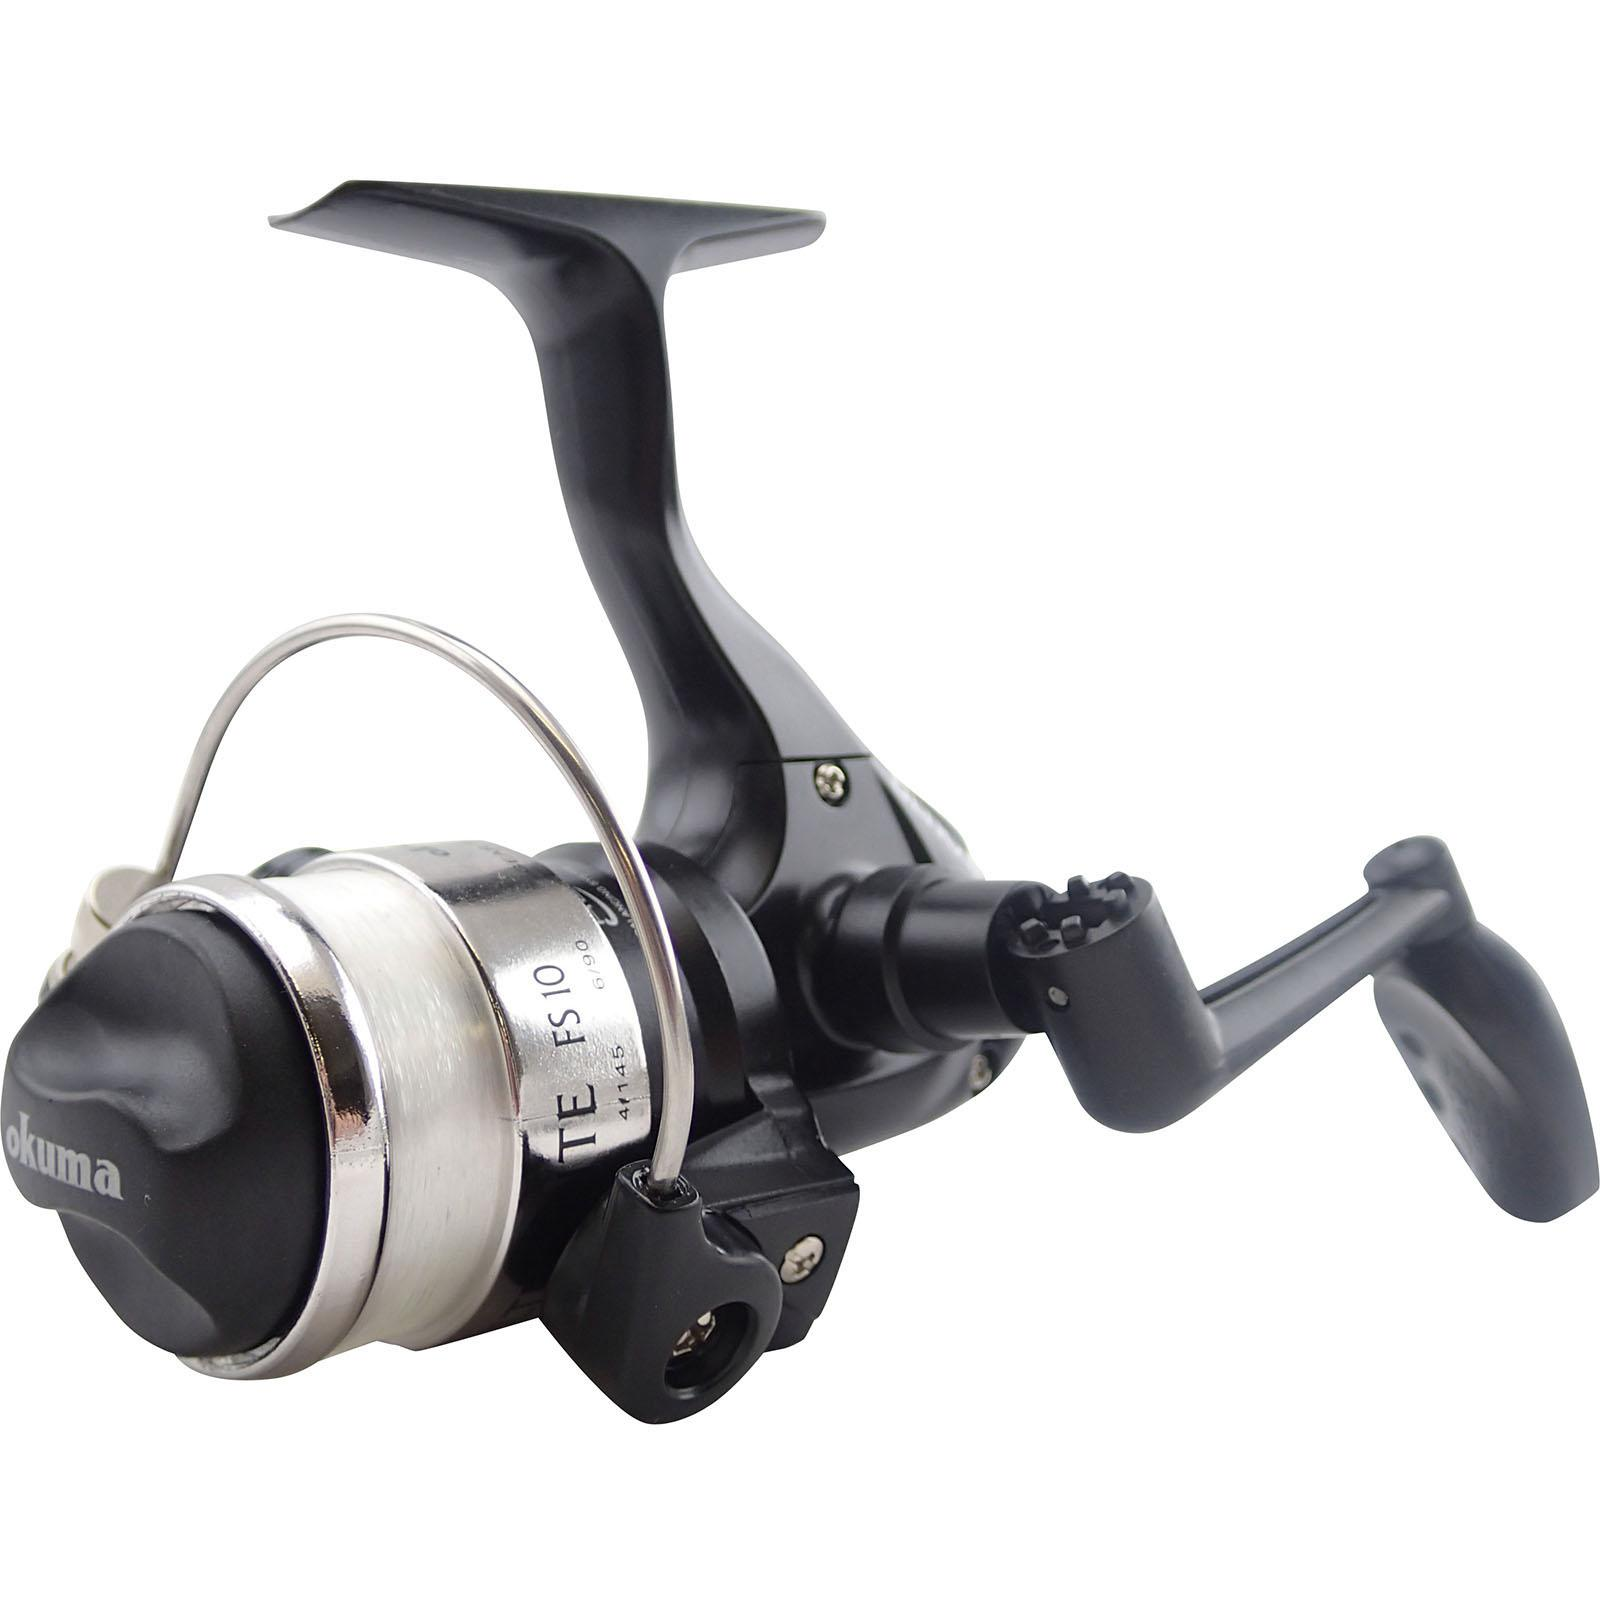 Okuma FS 10 Spinning Reel 1/4 turn